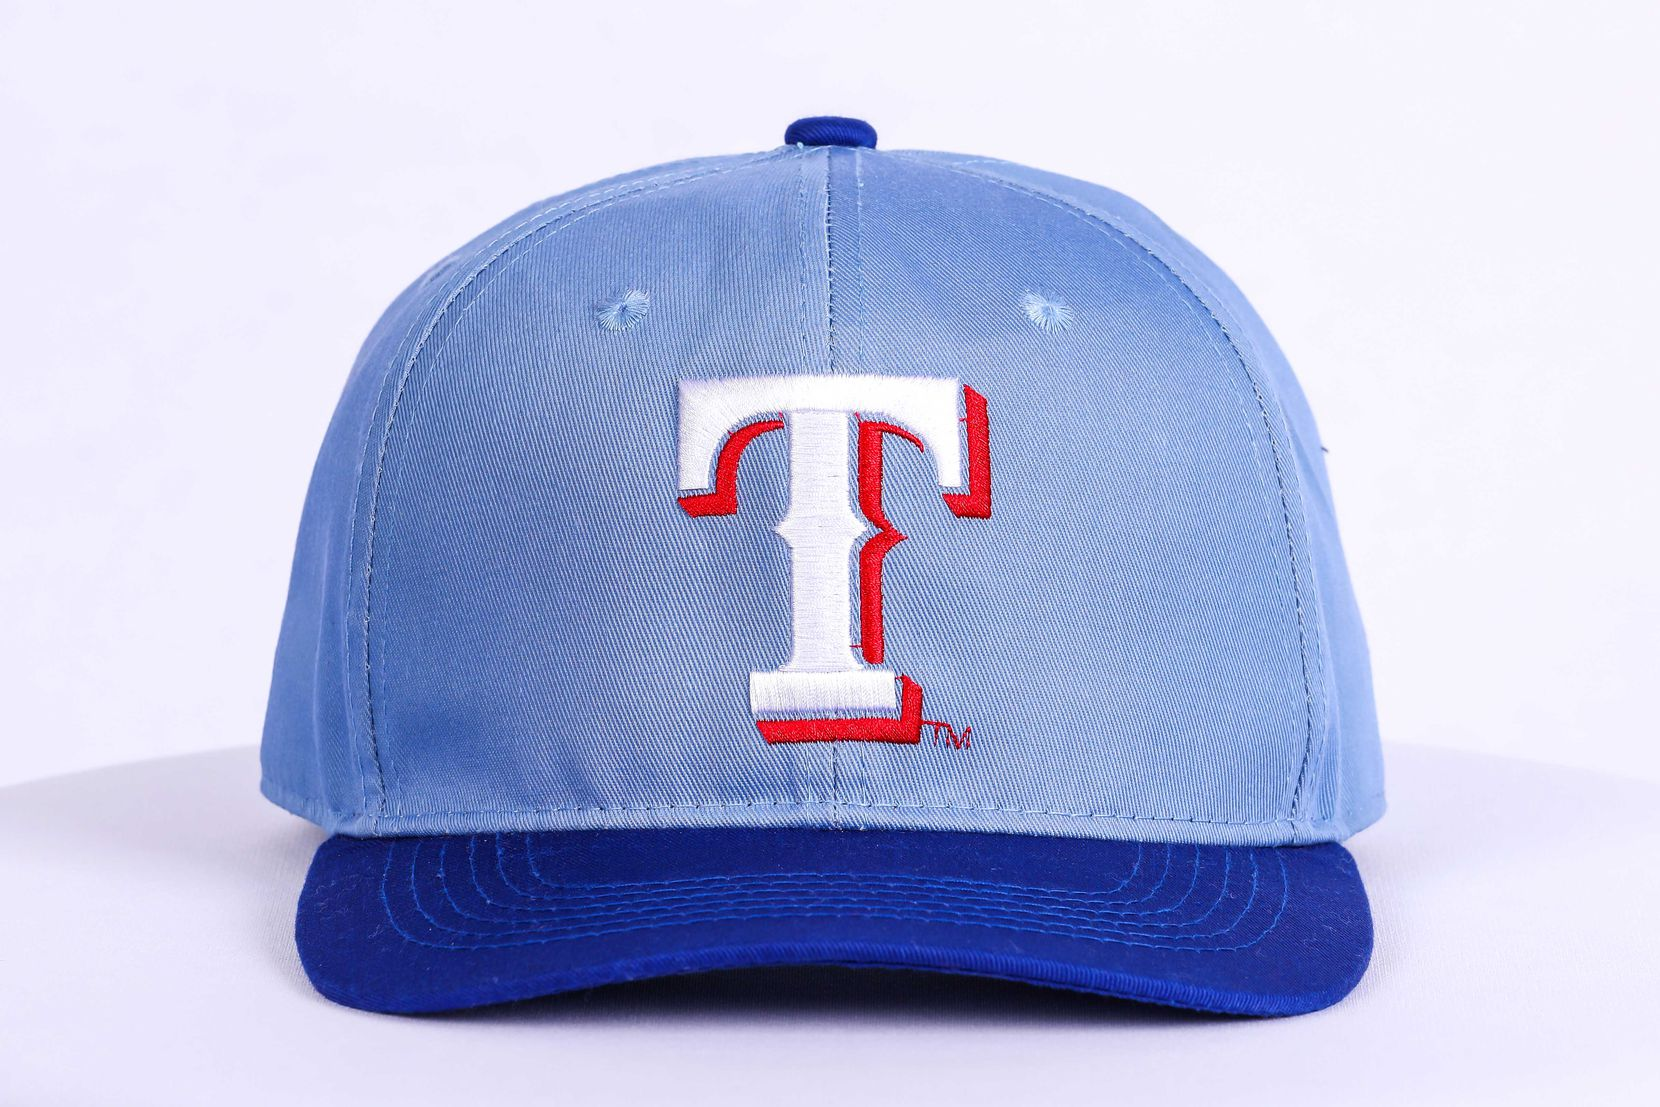 Replica hat to be handed out April 11.